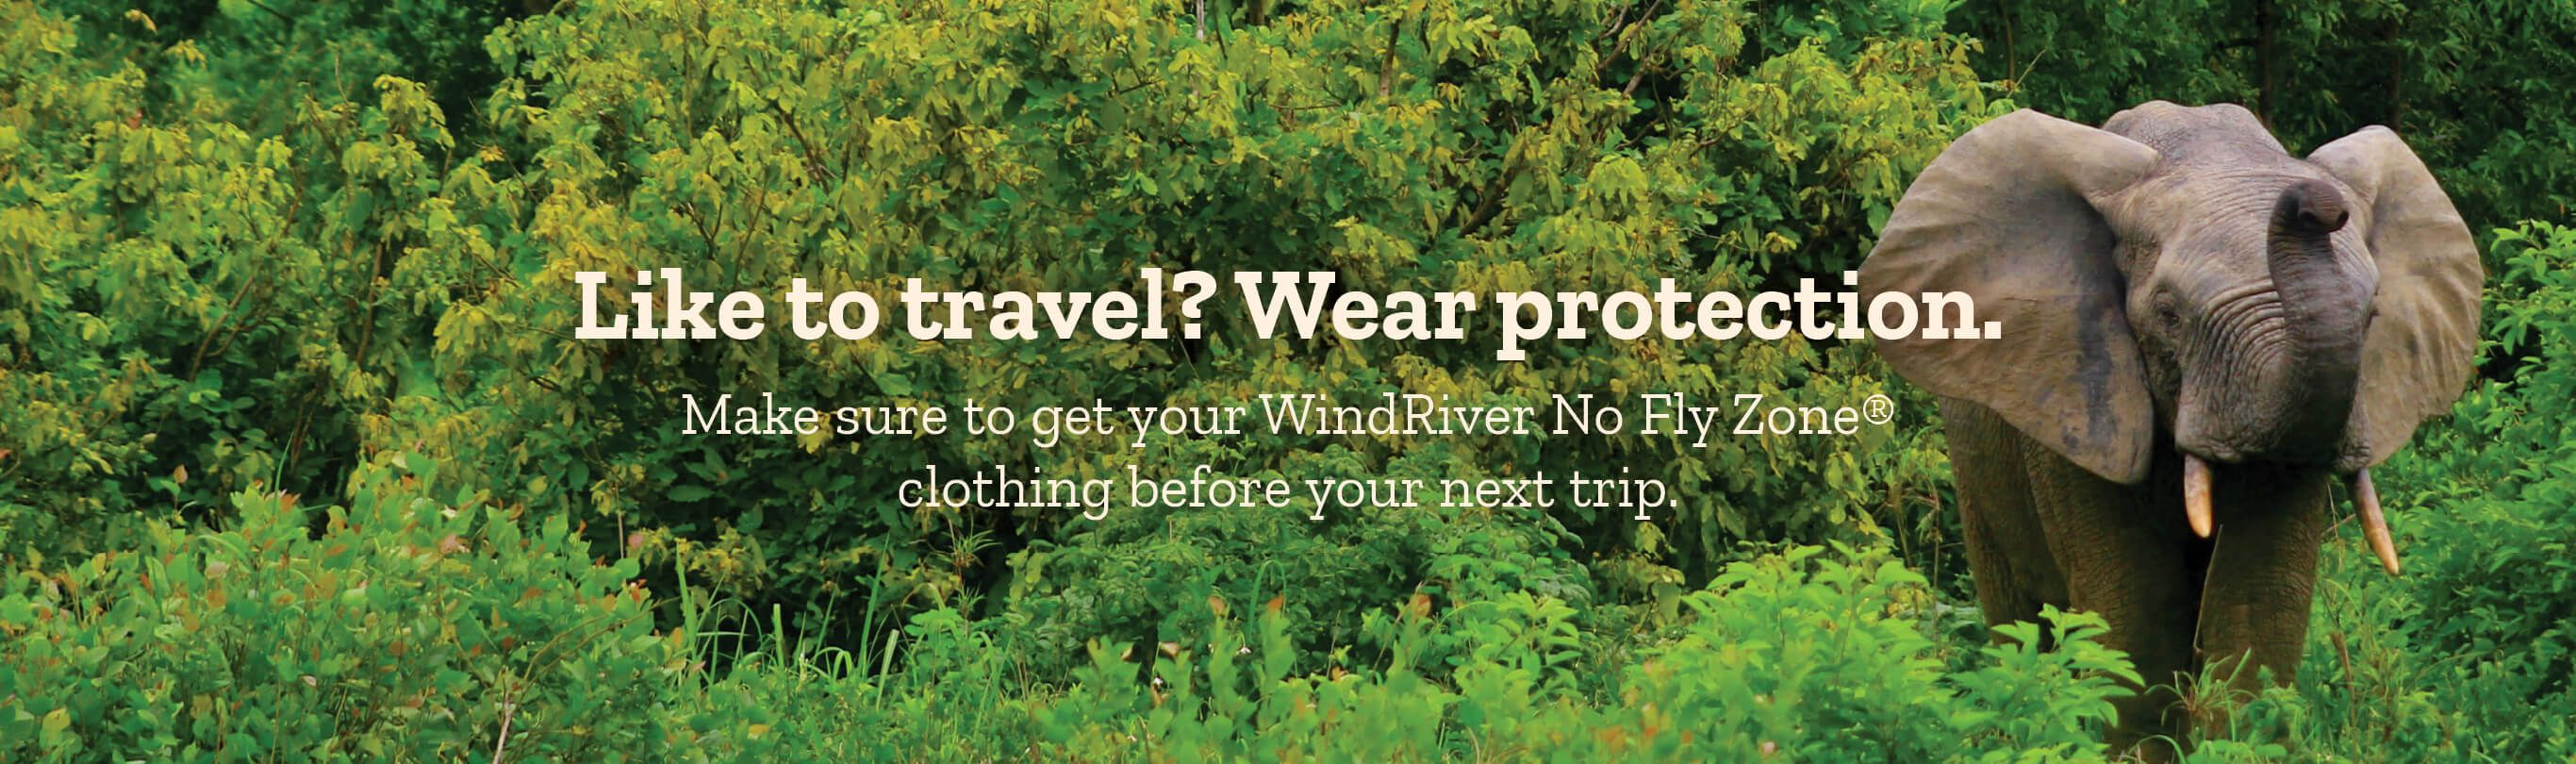 Like to travel? Wear protection. Make suire to get your WindRiver No Fly Zone clothign before your next trip